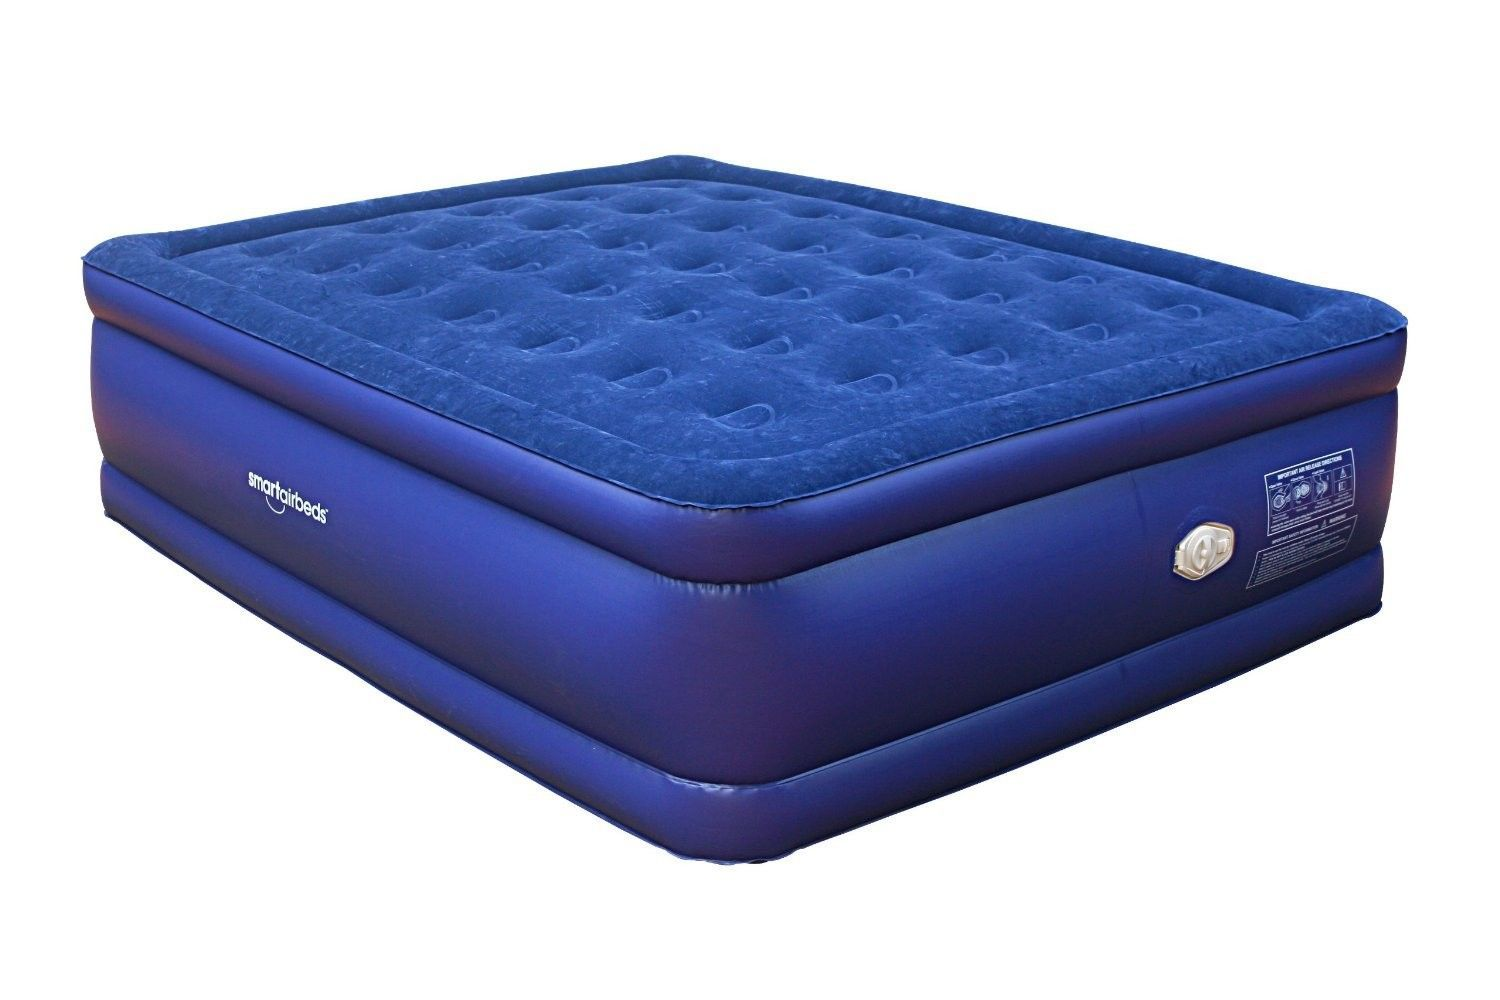 21 air mattress products pinterest air mattress and products